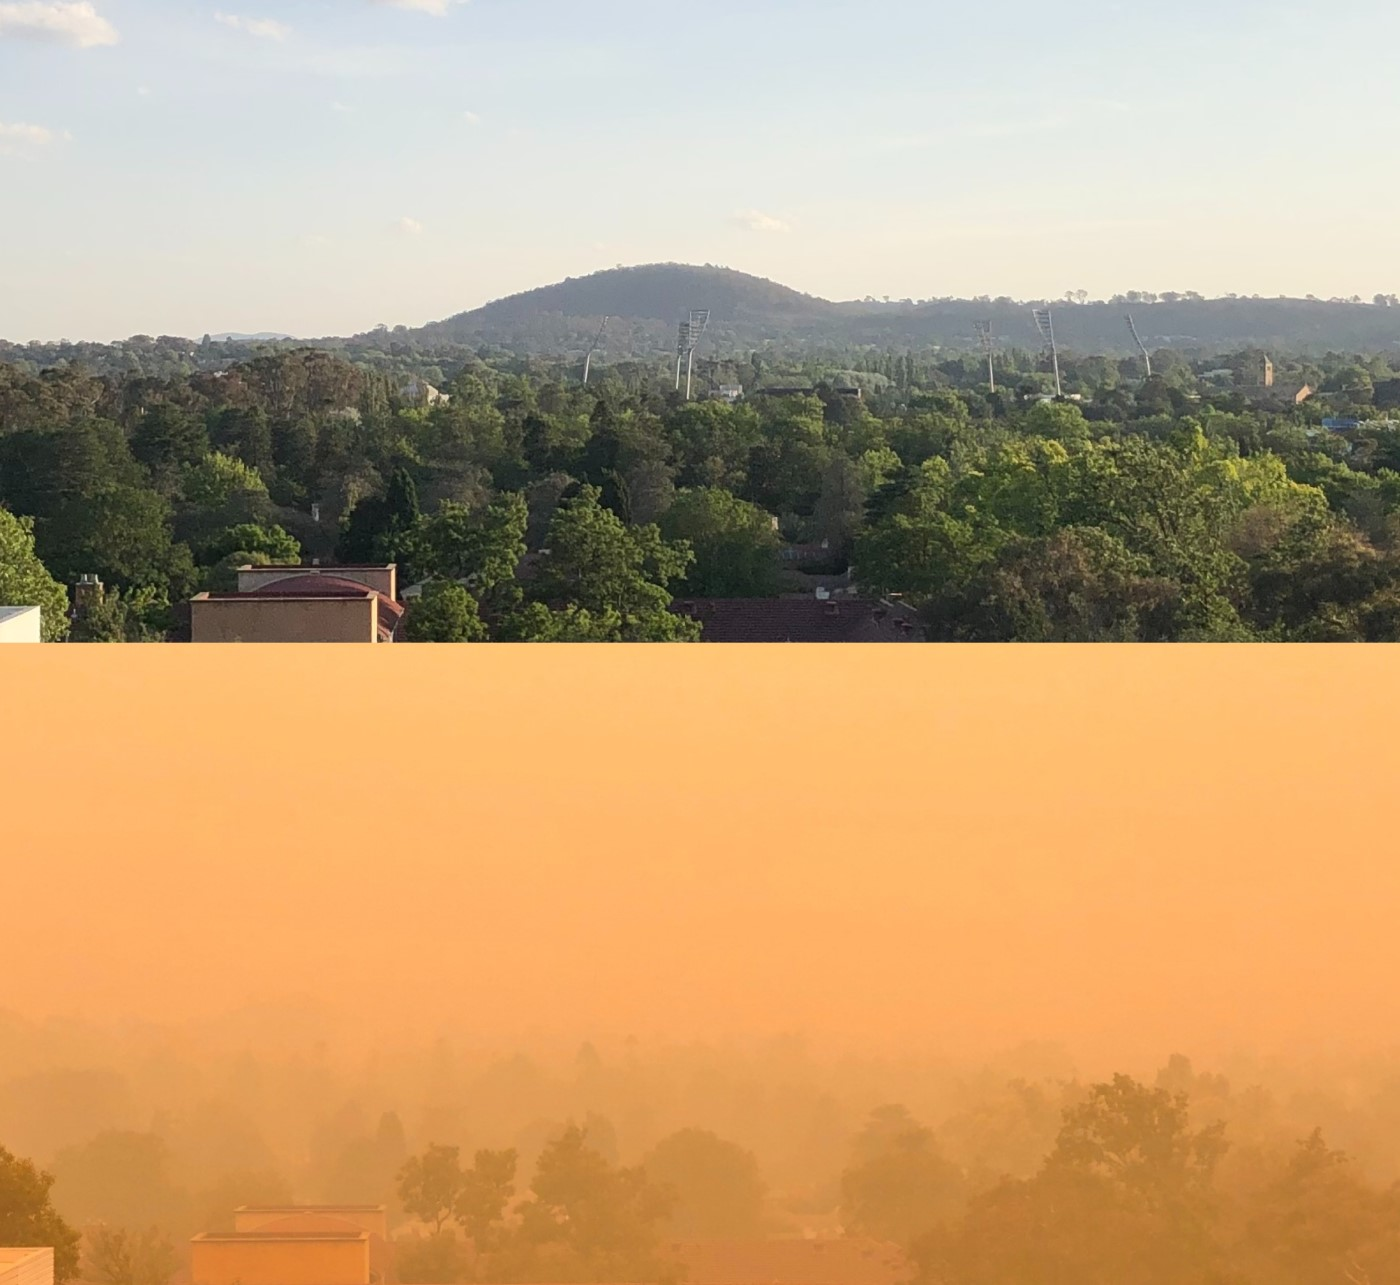 Two photos of the same leafy suburban landscape, one showing clear skies, the other a thick orange haze.